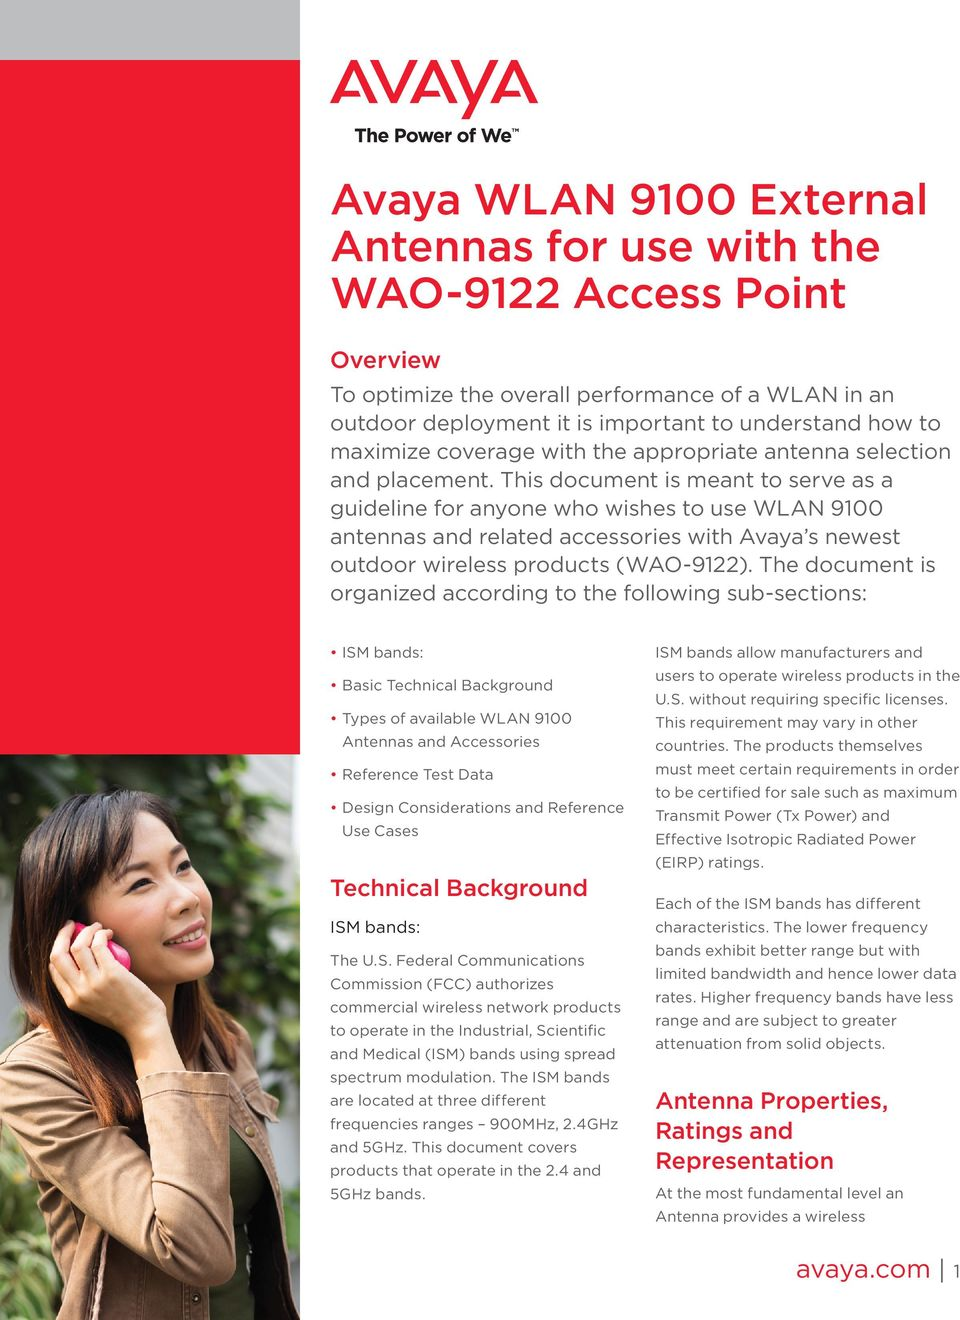 Avaya WLAN 9100 External Antennas for use with the WAO-9122 Access